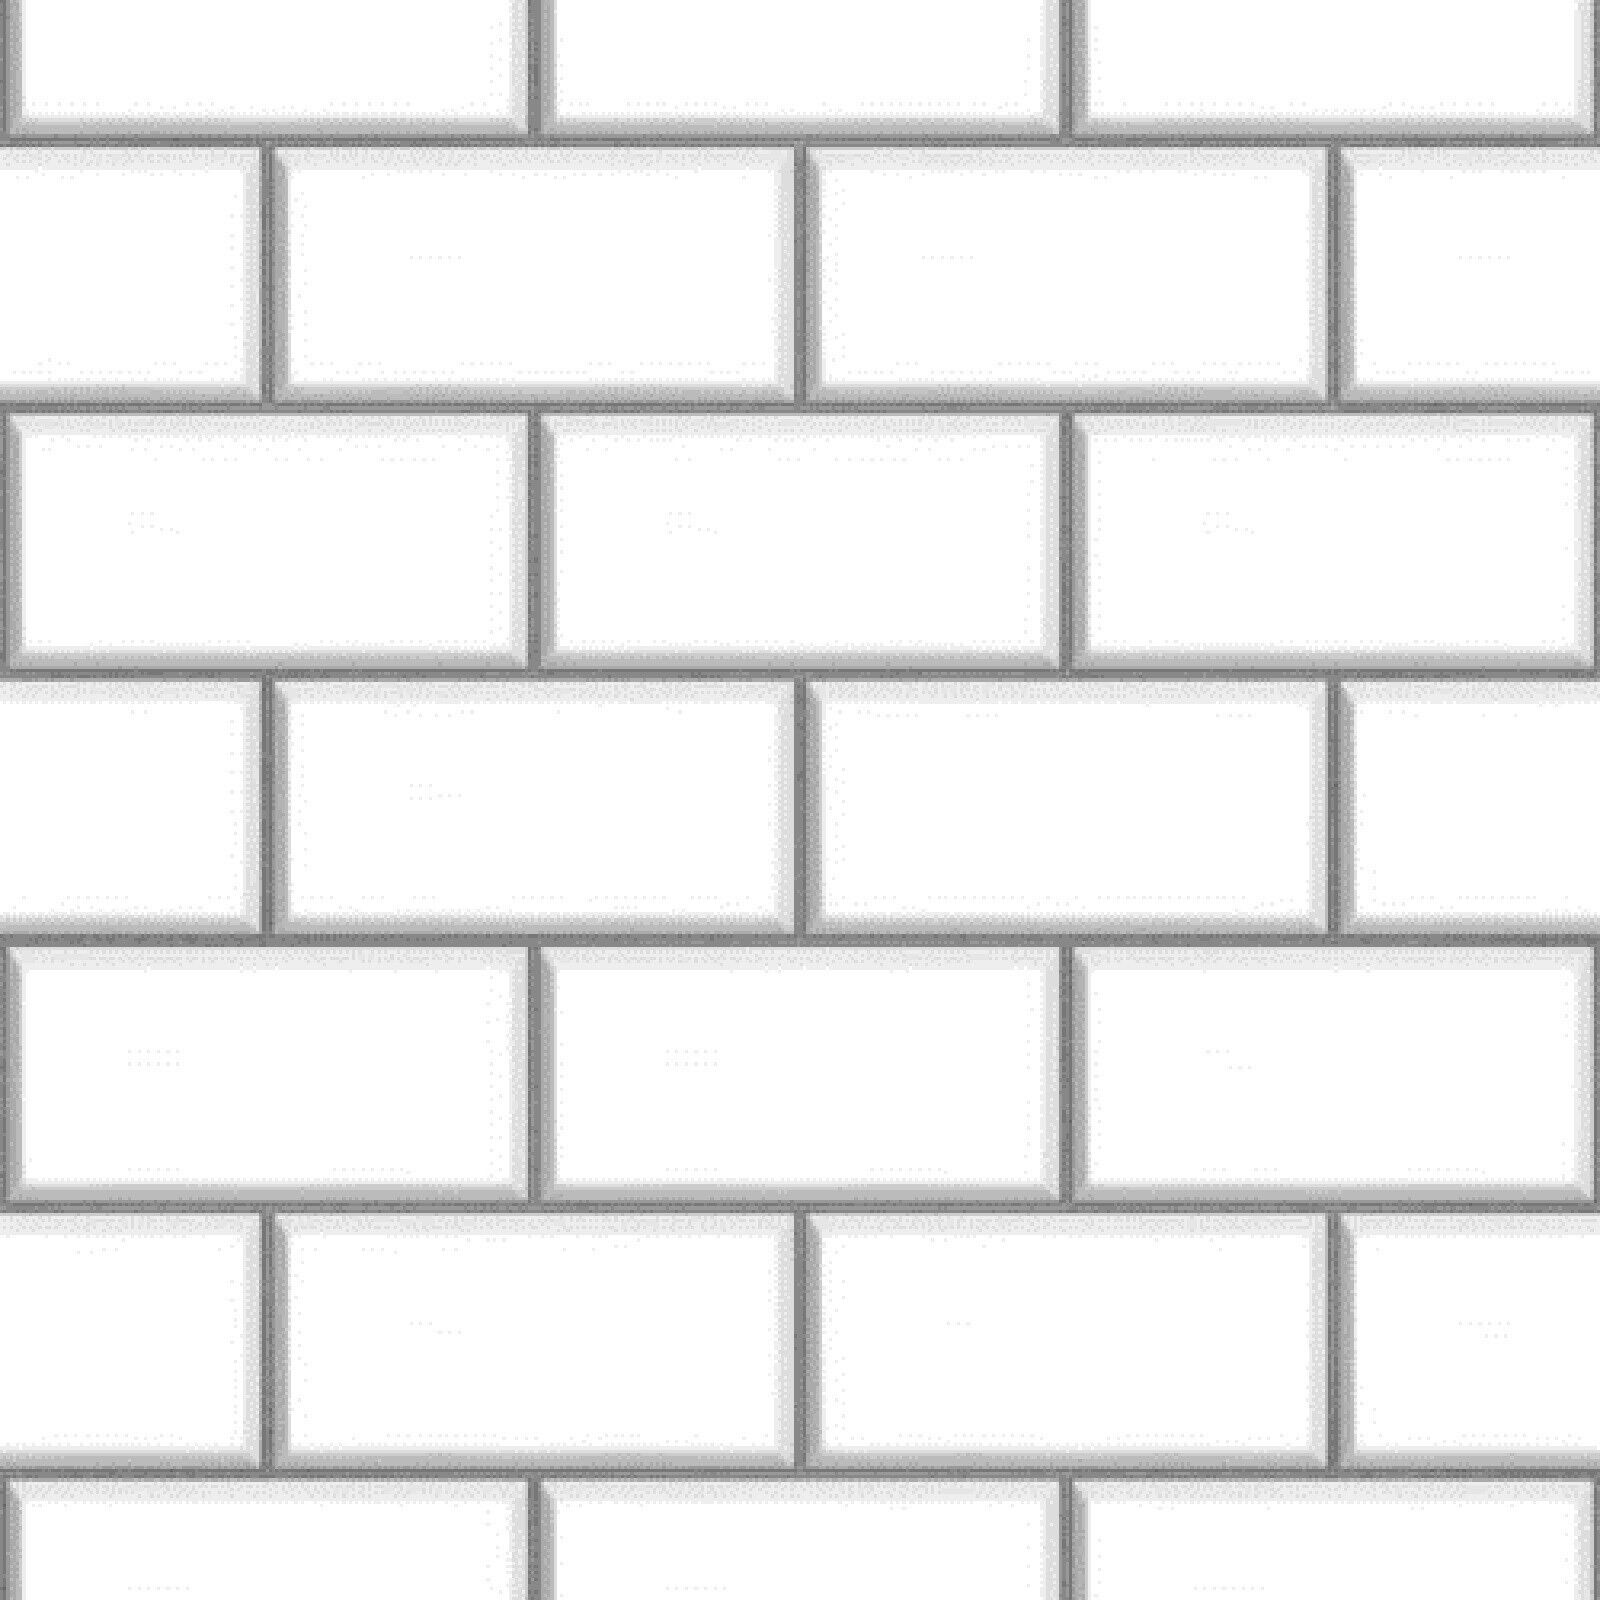 Fine decor fd40136 luxury white cermica subway brick tile effect fine decor fd40136 luxury white cermica subway brick tile effect vinyl wallpaper dailygadgetfo Gallery